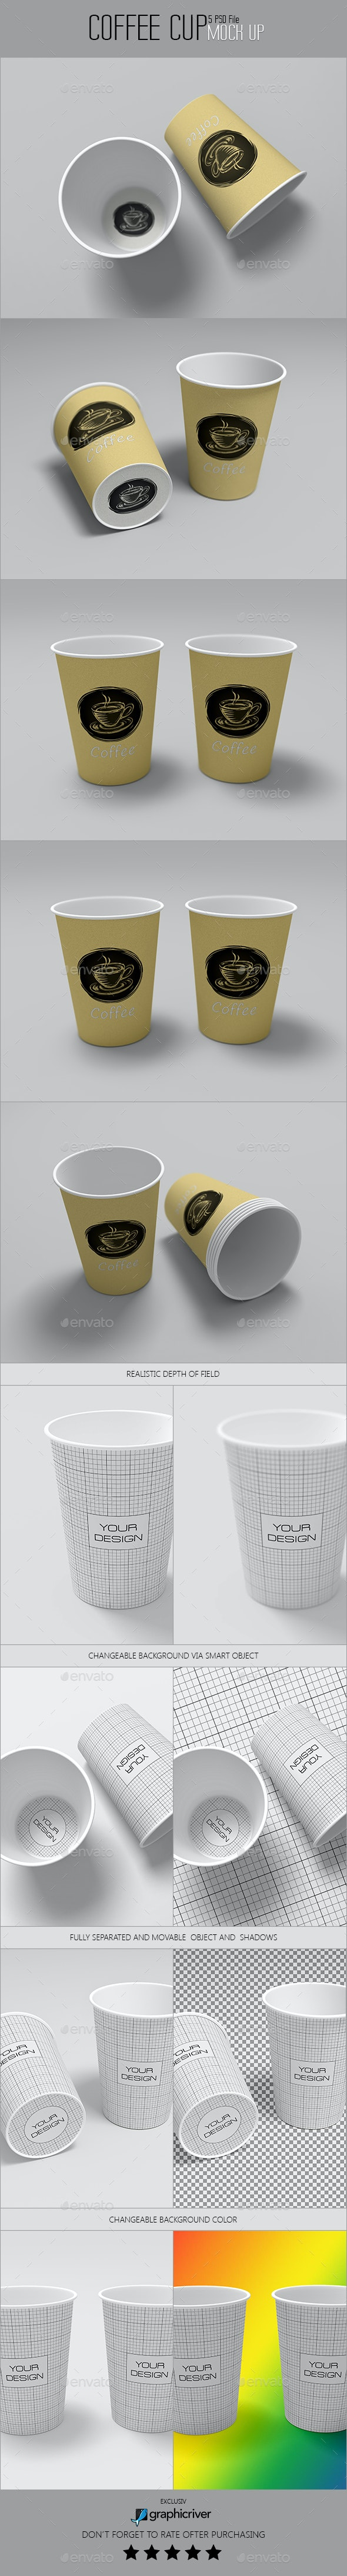 Coffee Cups - Product Mock-Ups Graphics